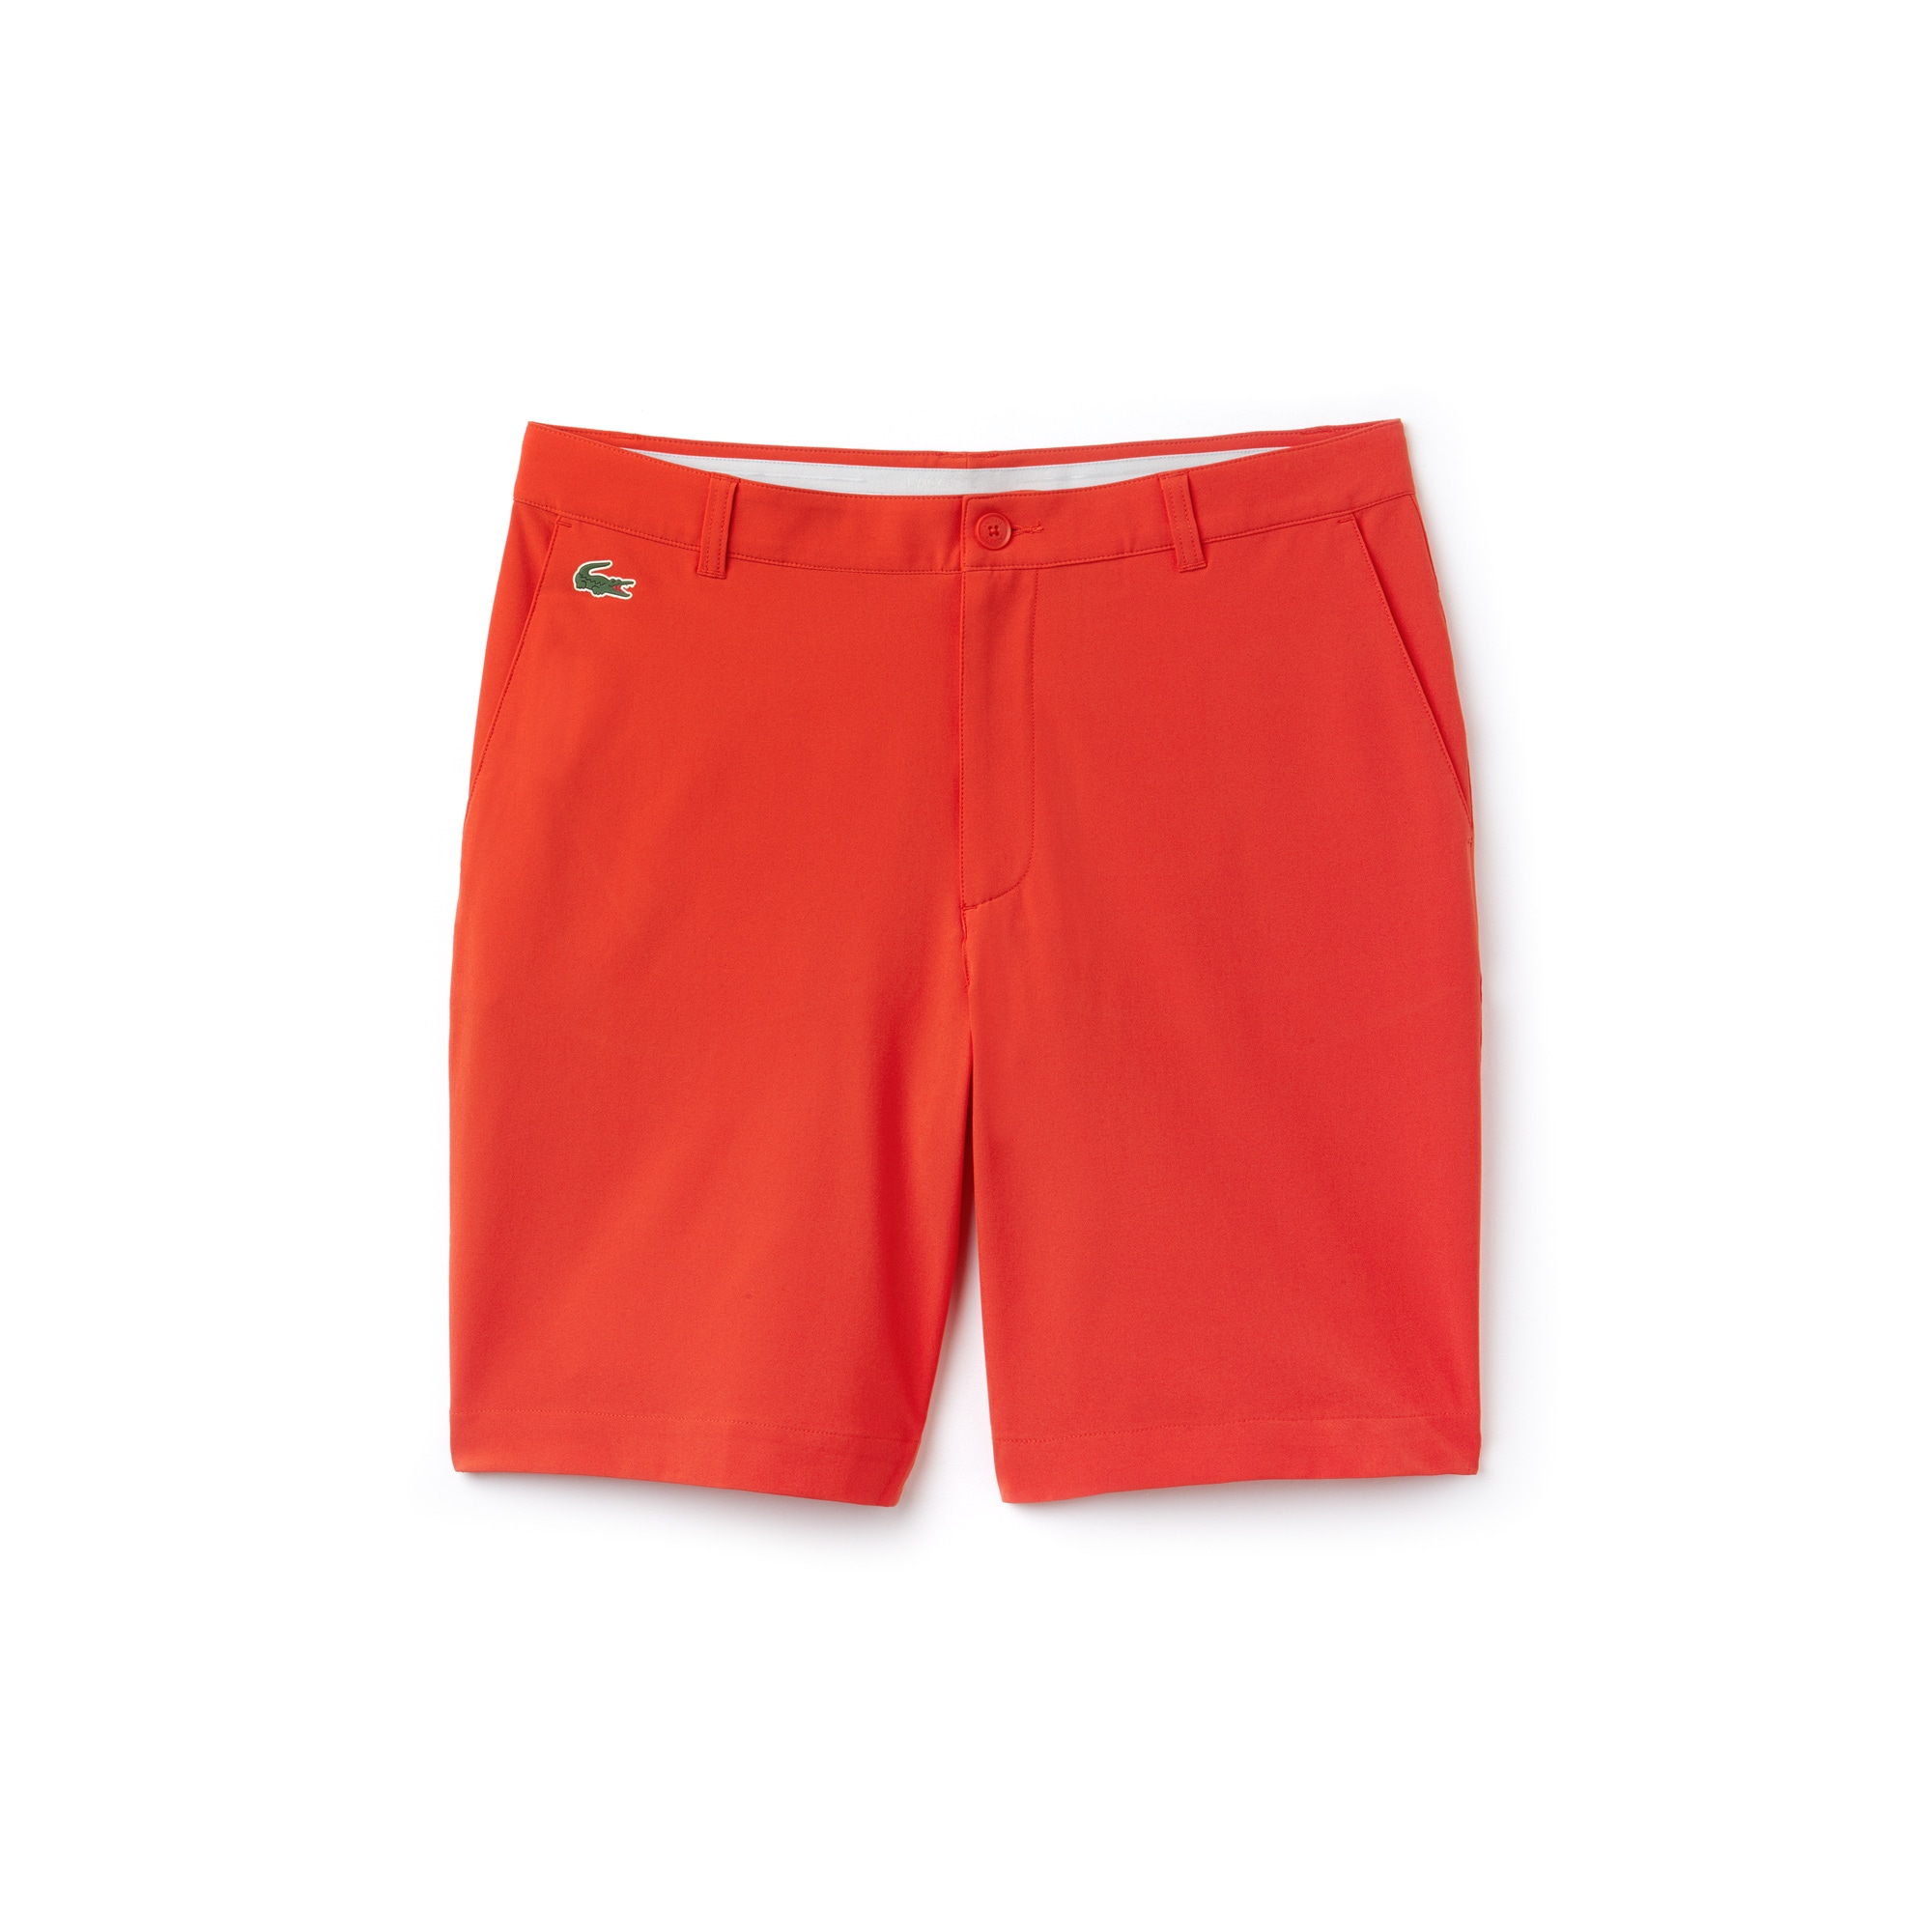 라코스테 Lacoste Mens SPORT Stretch Taffeta Technical Golf Bermuda Shorts,red